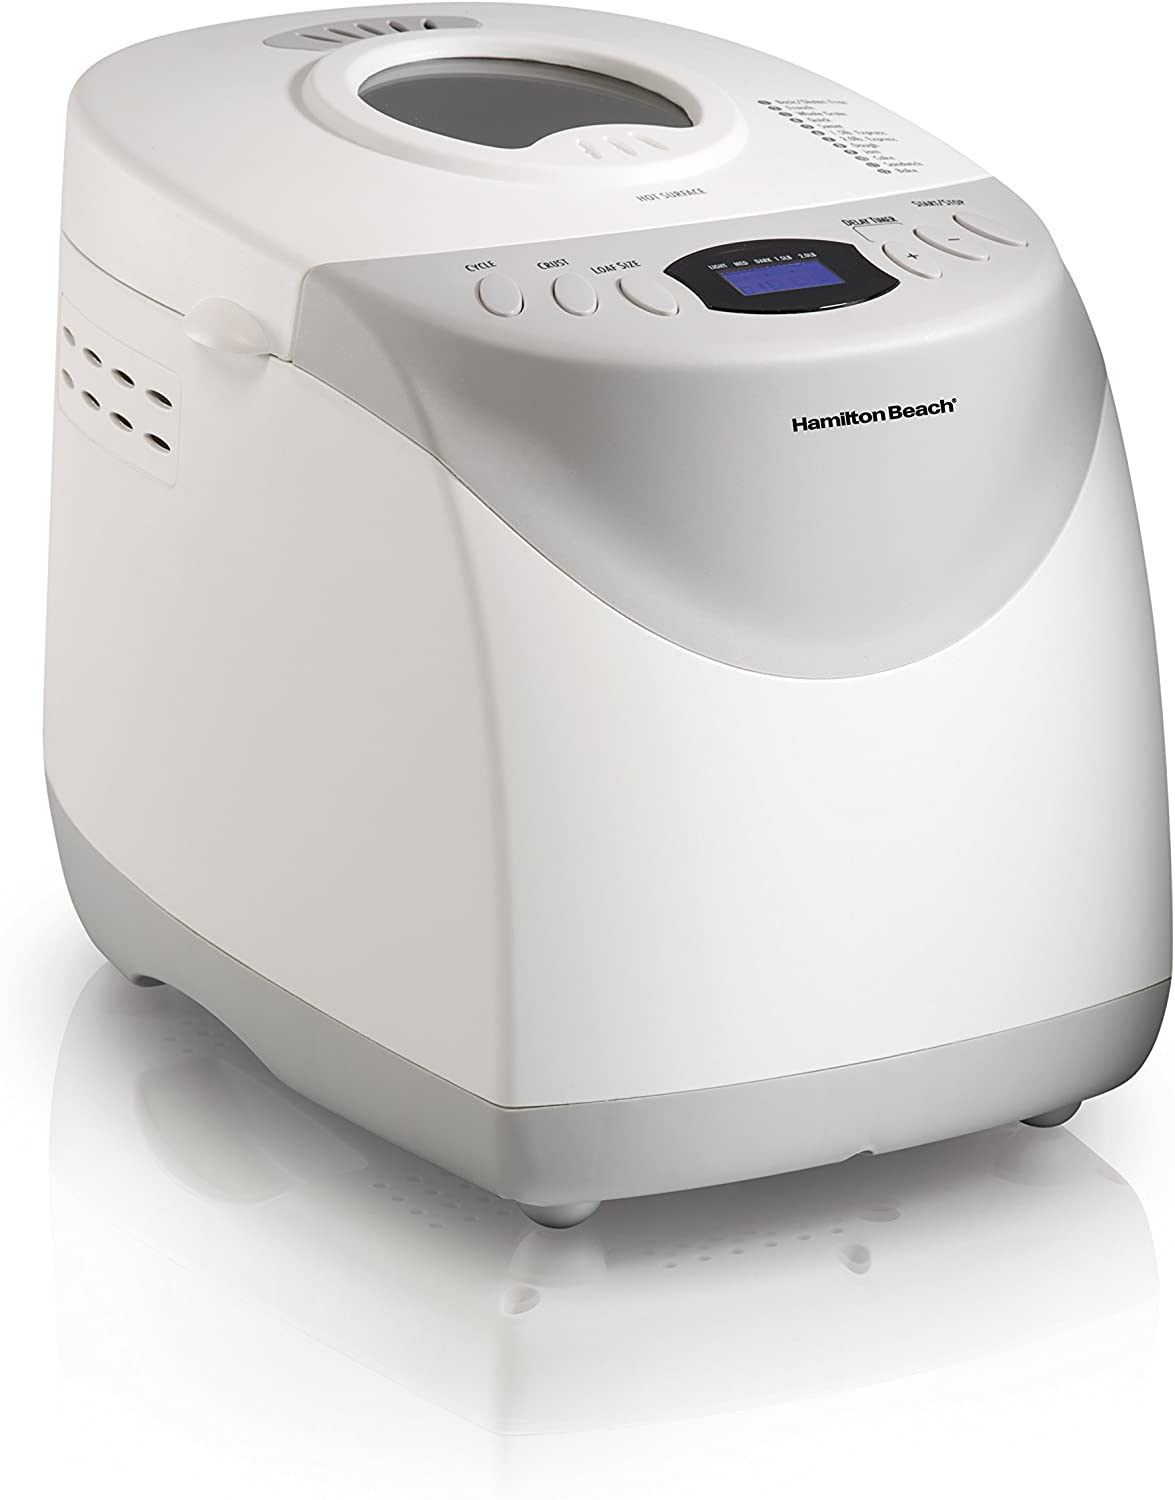 Hamilton Beach 29881 Bread Machine